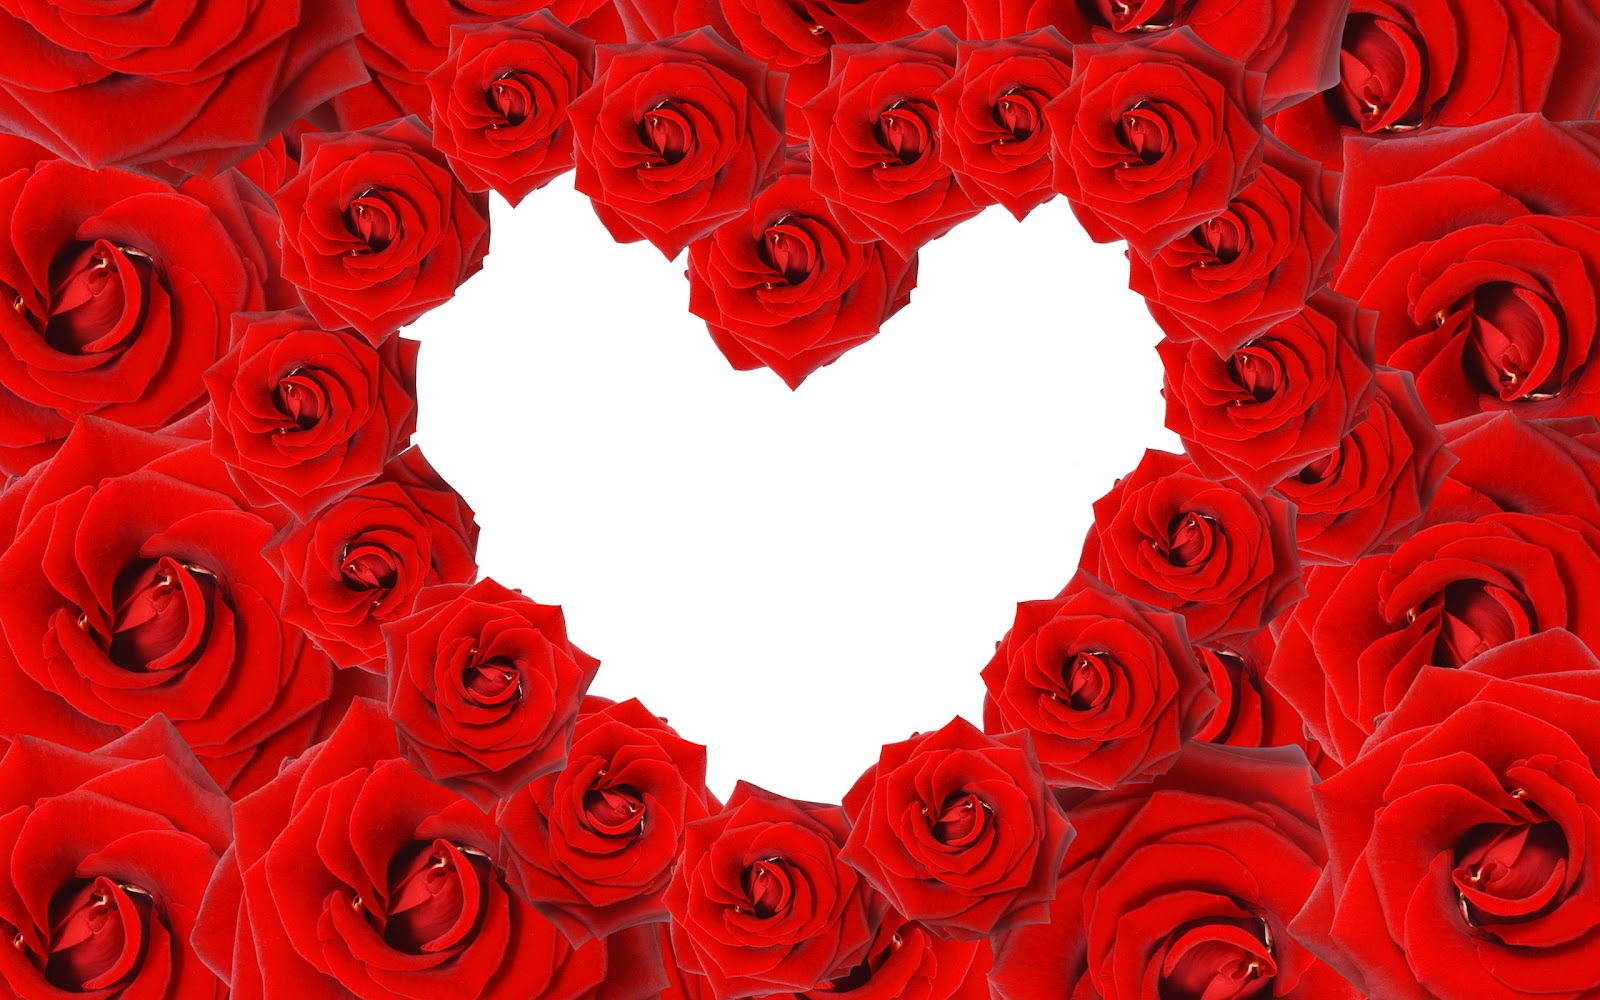 red rose background hd - photo #30